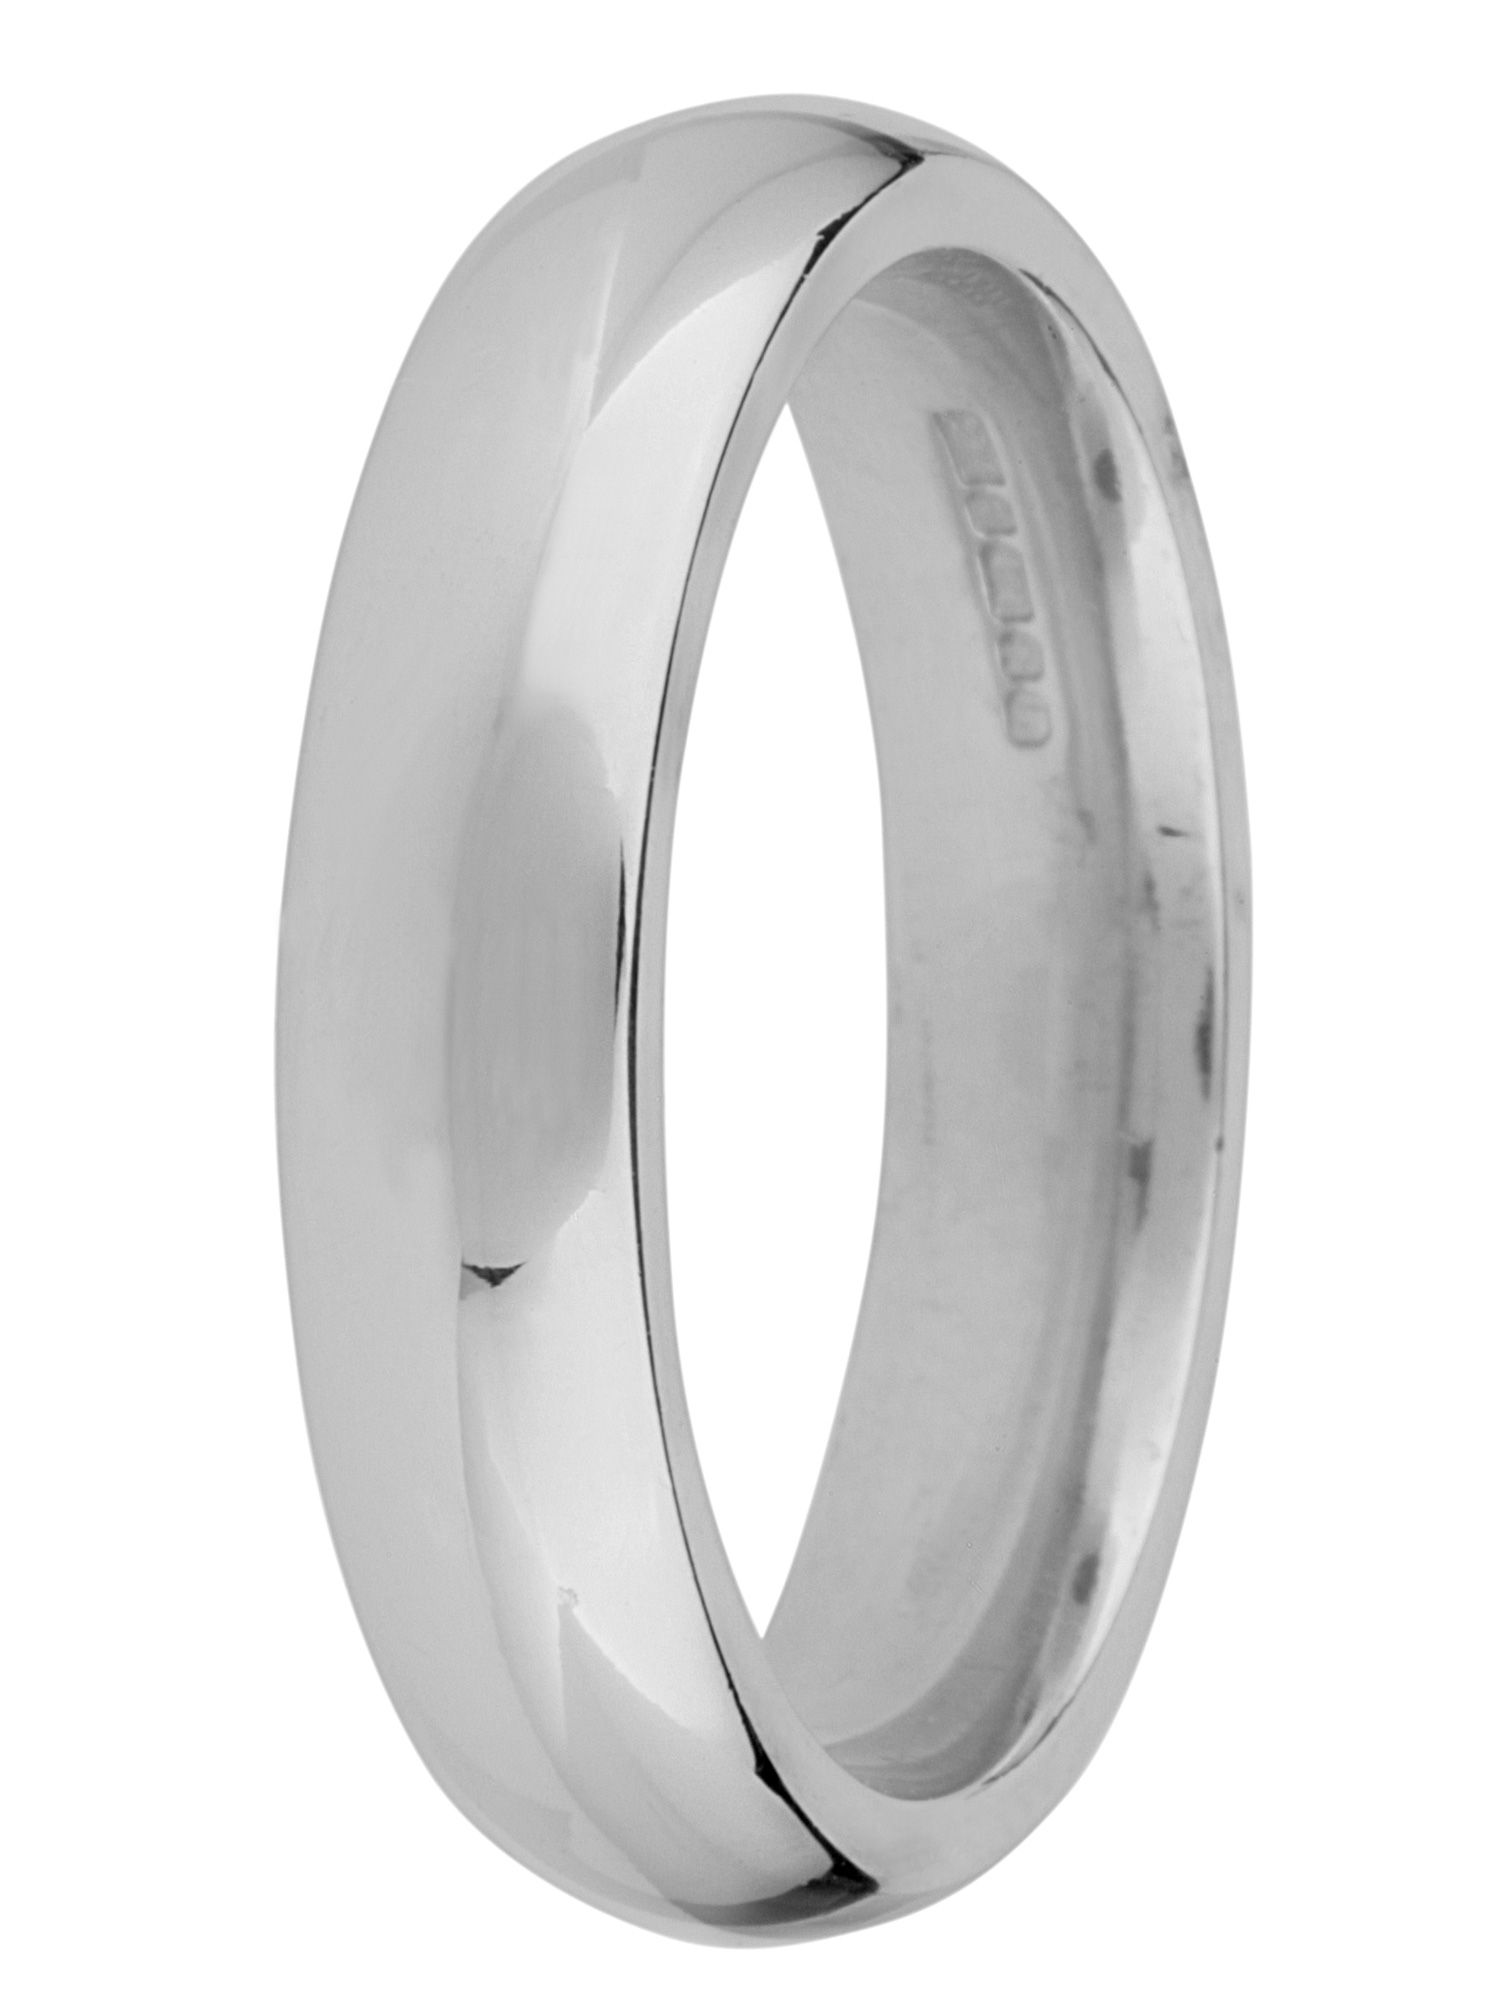 Brides 18ct gold heavy court 5mm wedding ring - White Gold